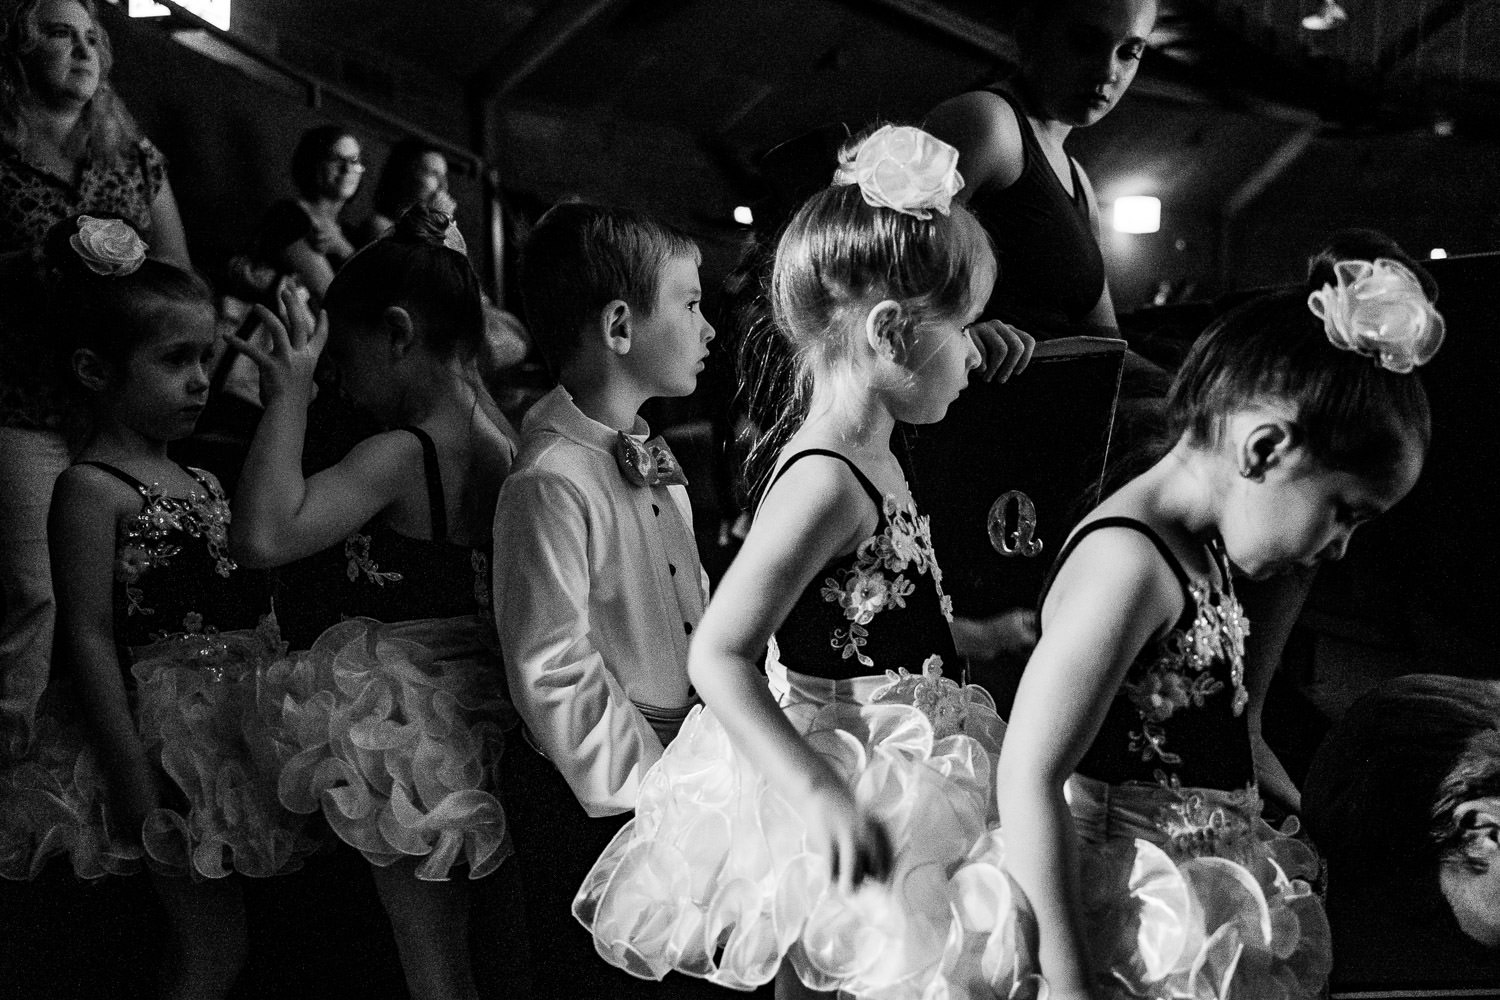 Children line up waiting to go onstage at their dance recital.